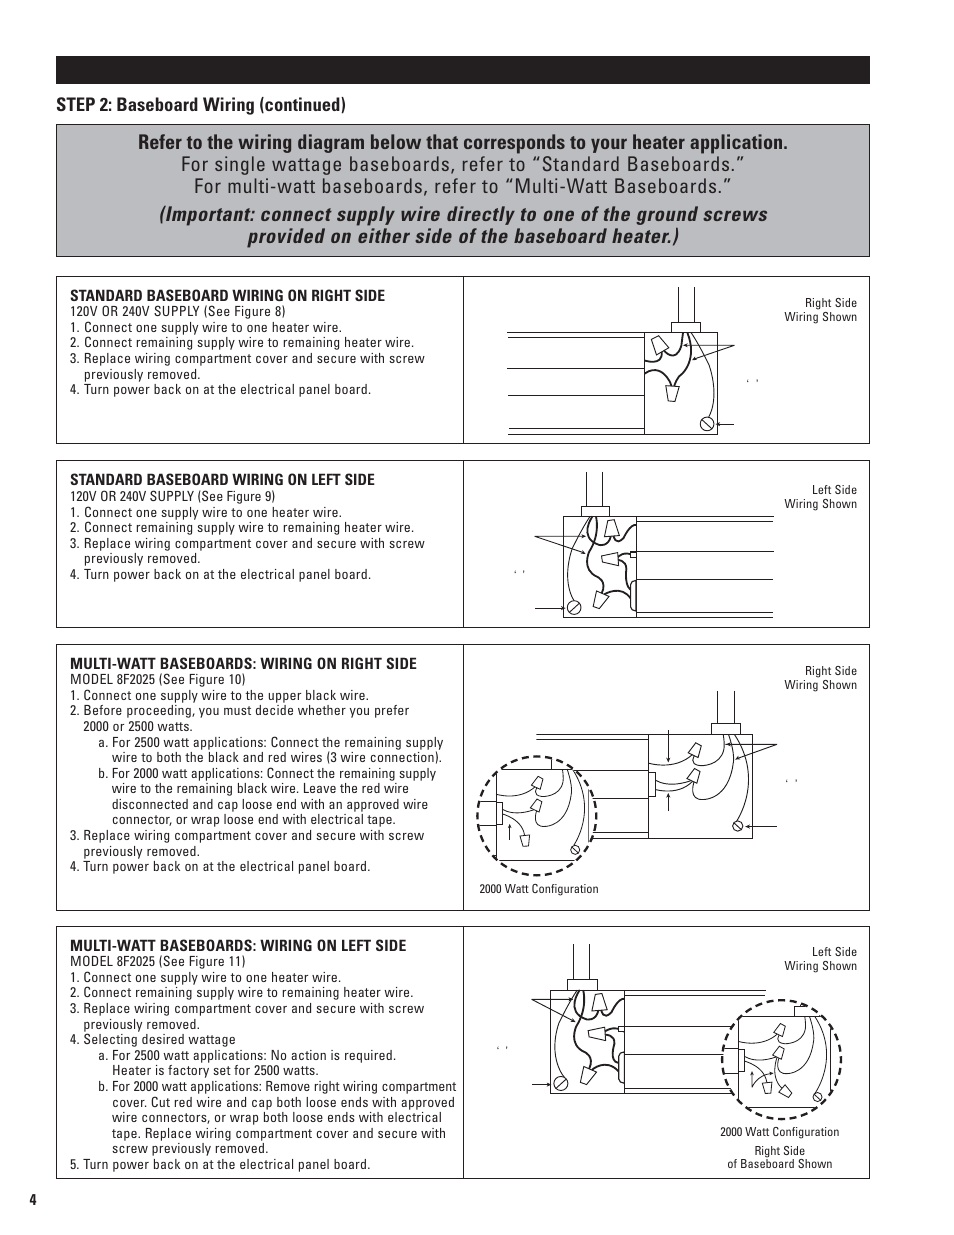 cadet baseboard heater wiring diagram painless 66 mustang installation instructions, step 2: (continued) | 5f1250-8 user manual ...